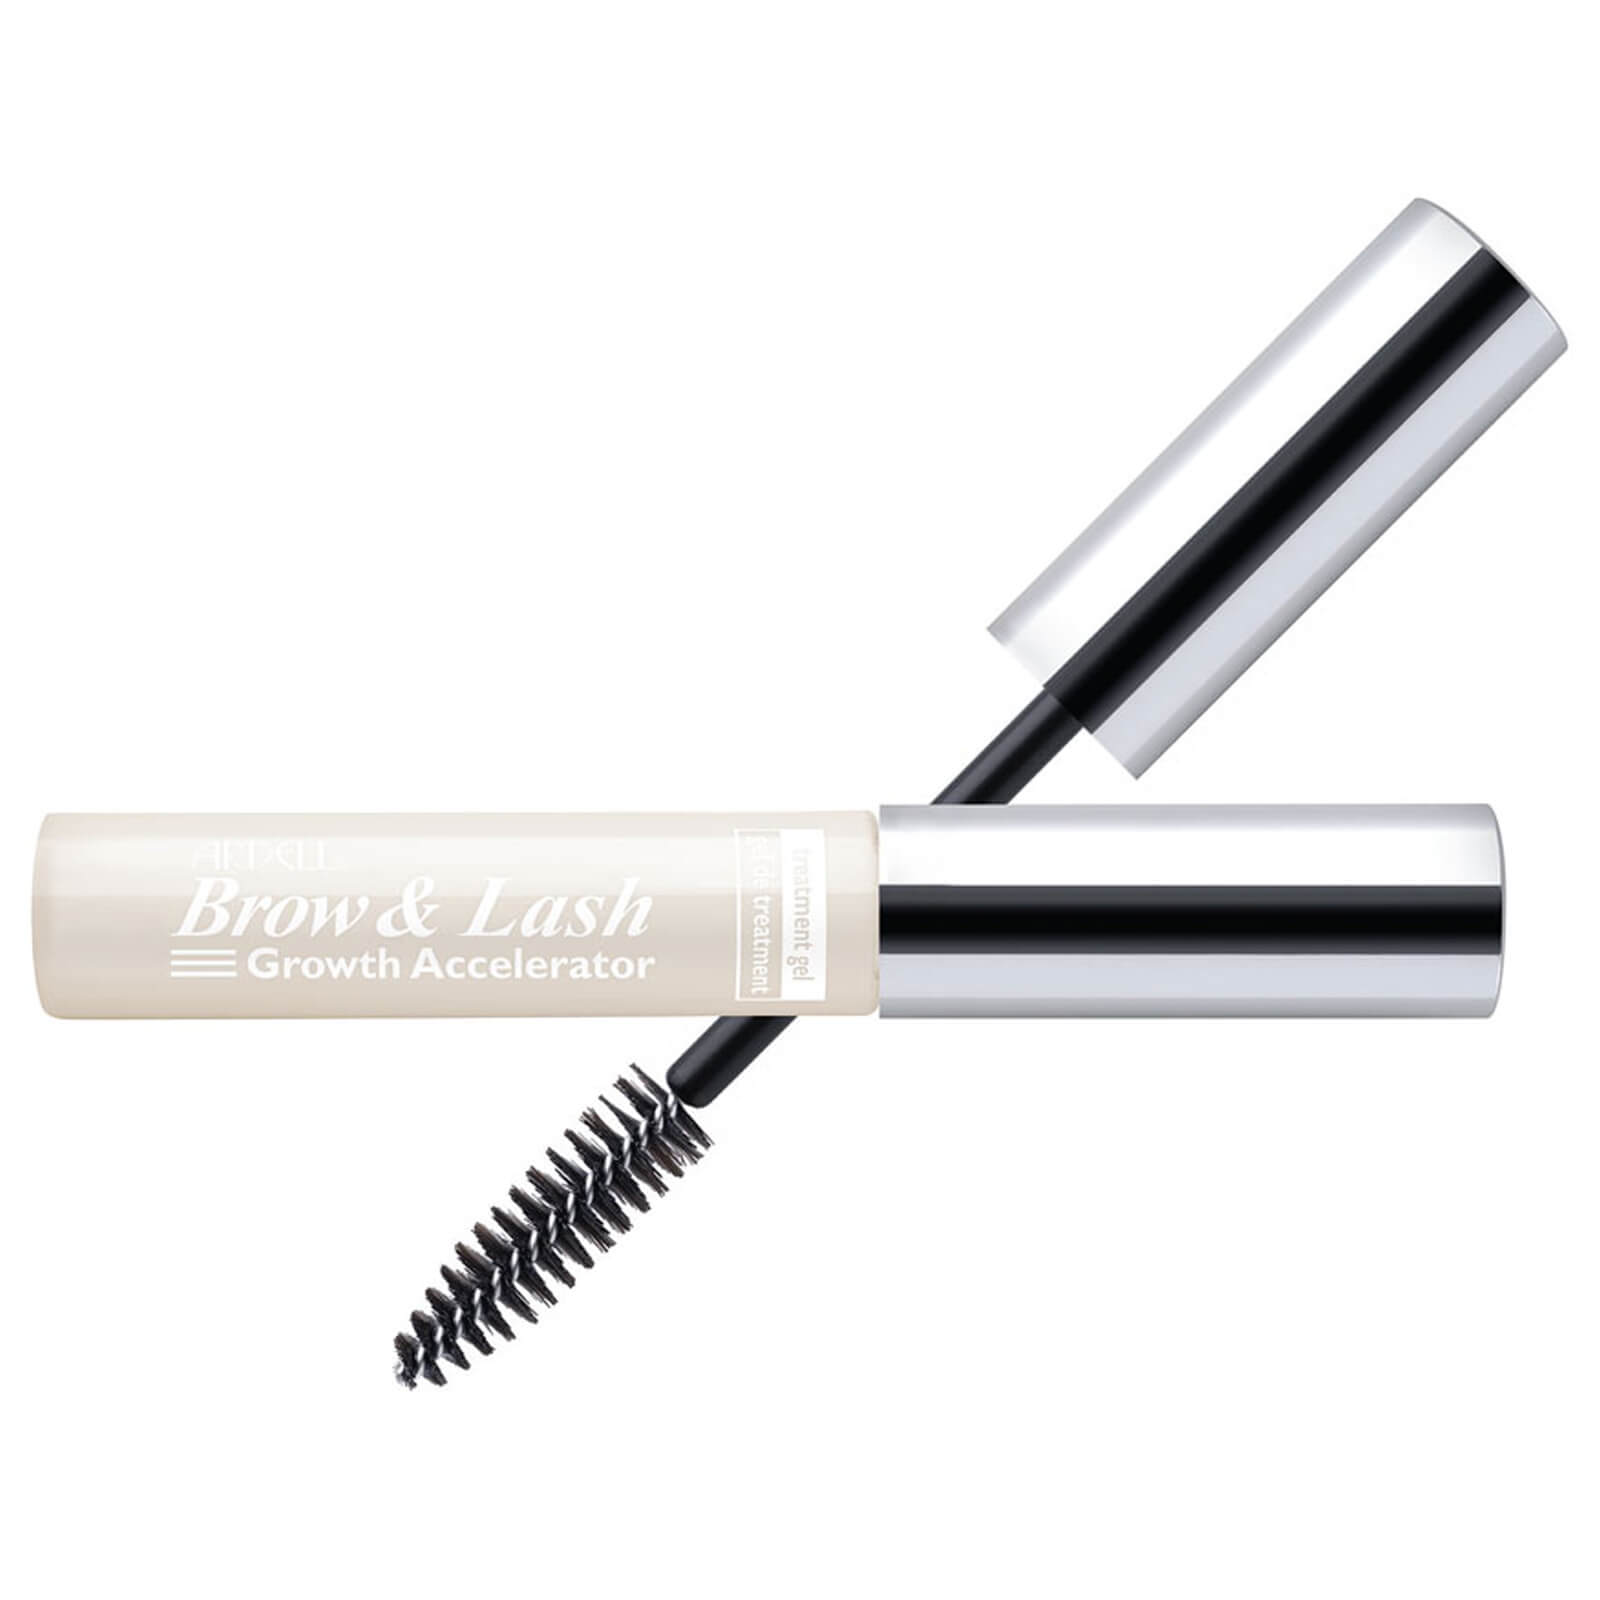 Ardell Pro Brow And Lash Growth Accelerator Buy Online At Ry Elf Cosmetics Clear Ampamp Mascara Crystal Description